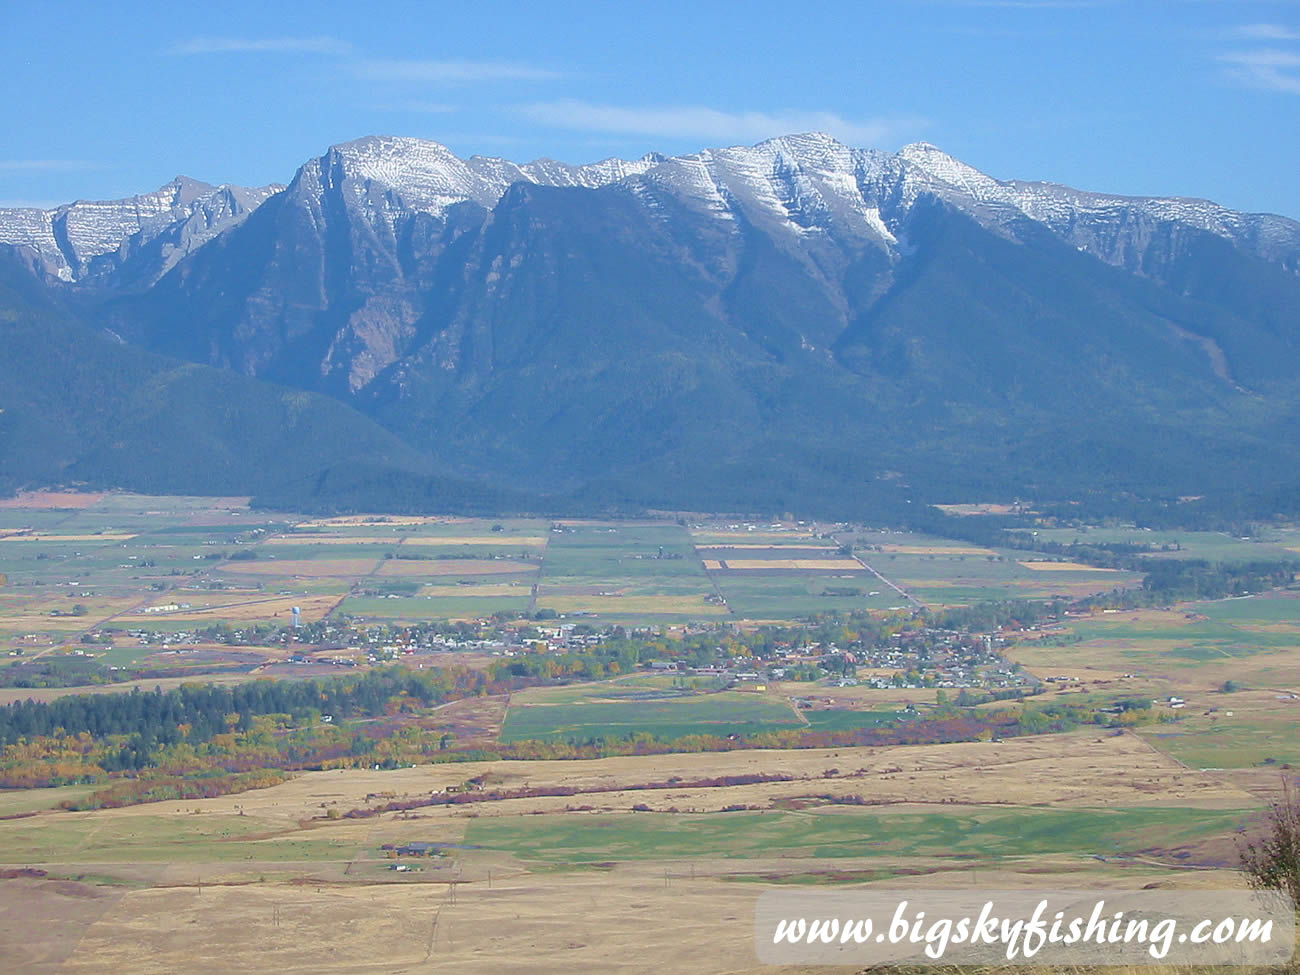 Higher Peaks Of The Mission Mountains In Montana